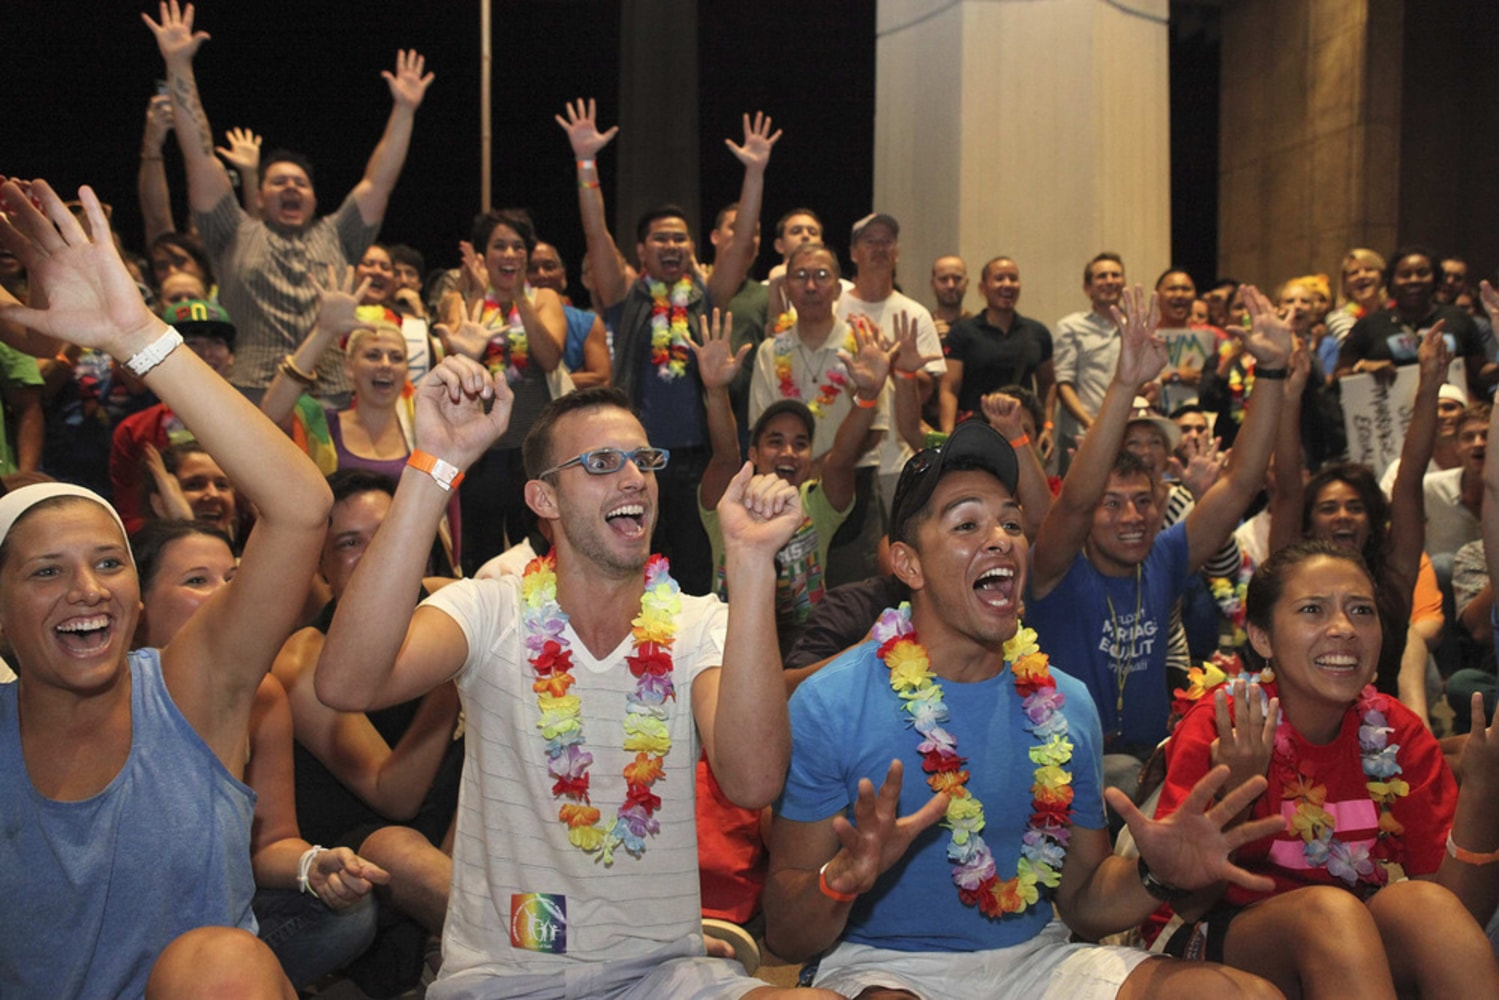 Hawaii s gay pictures